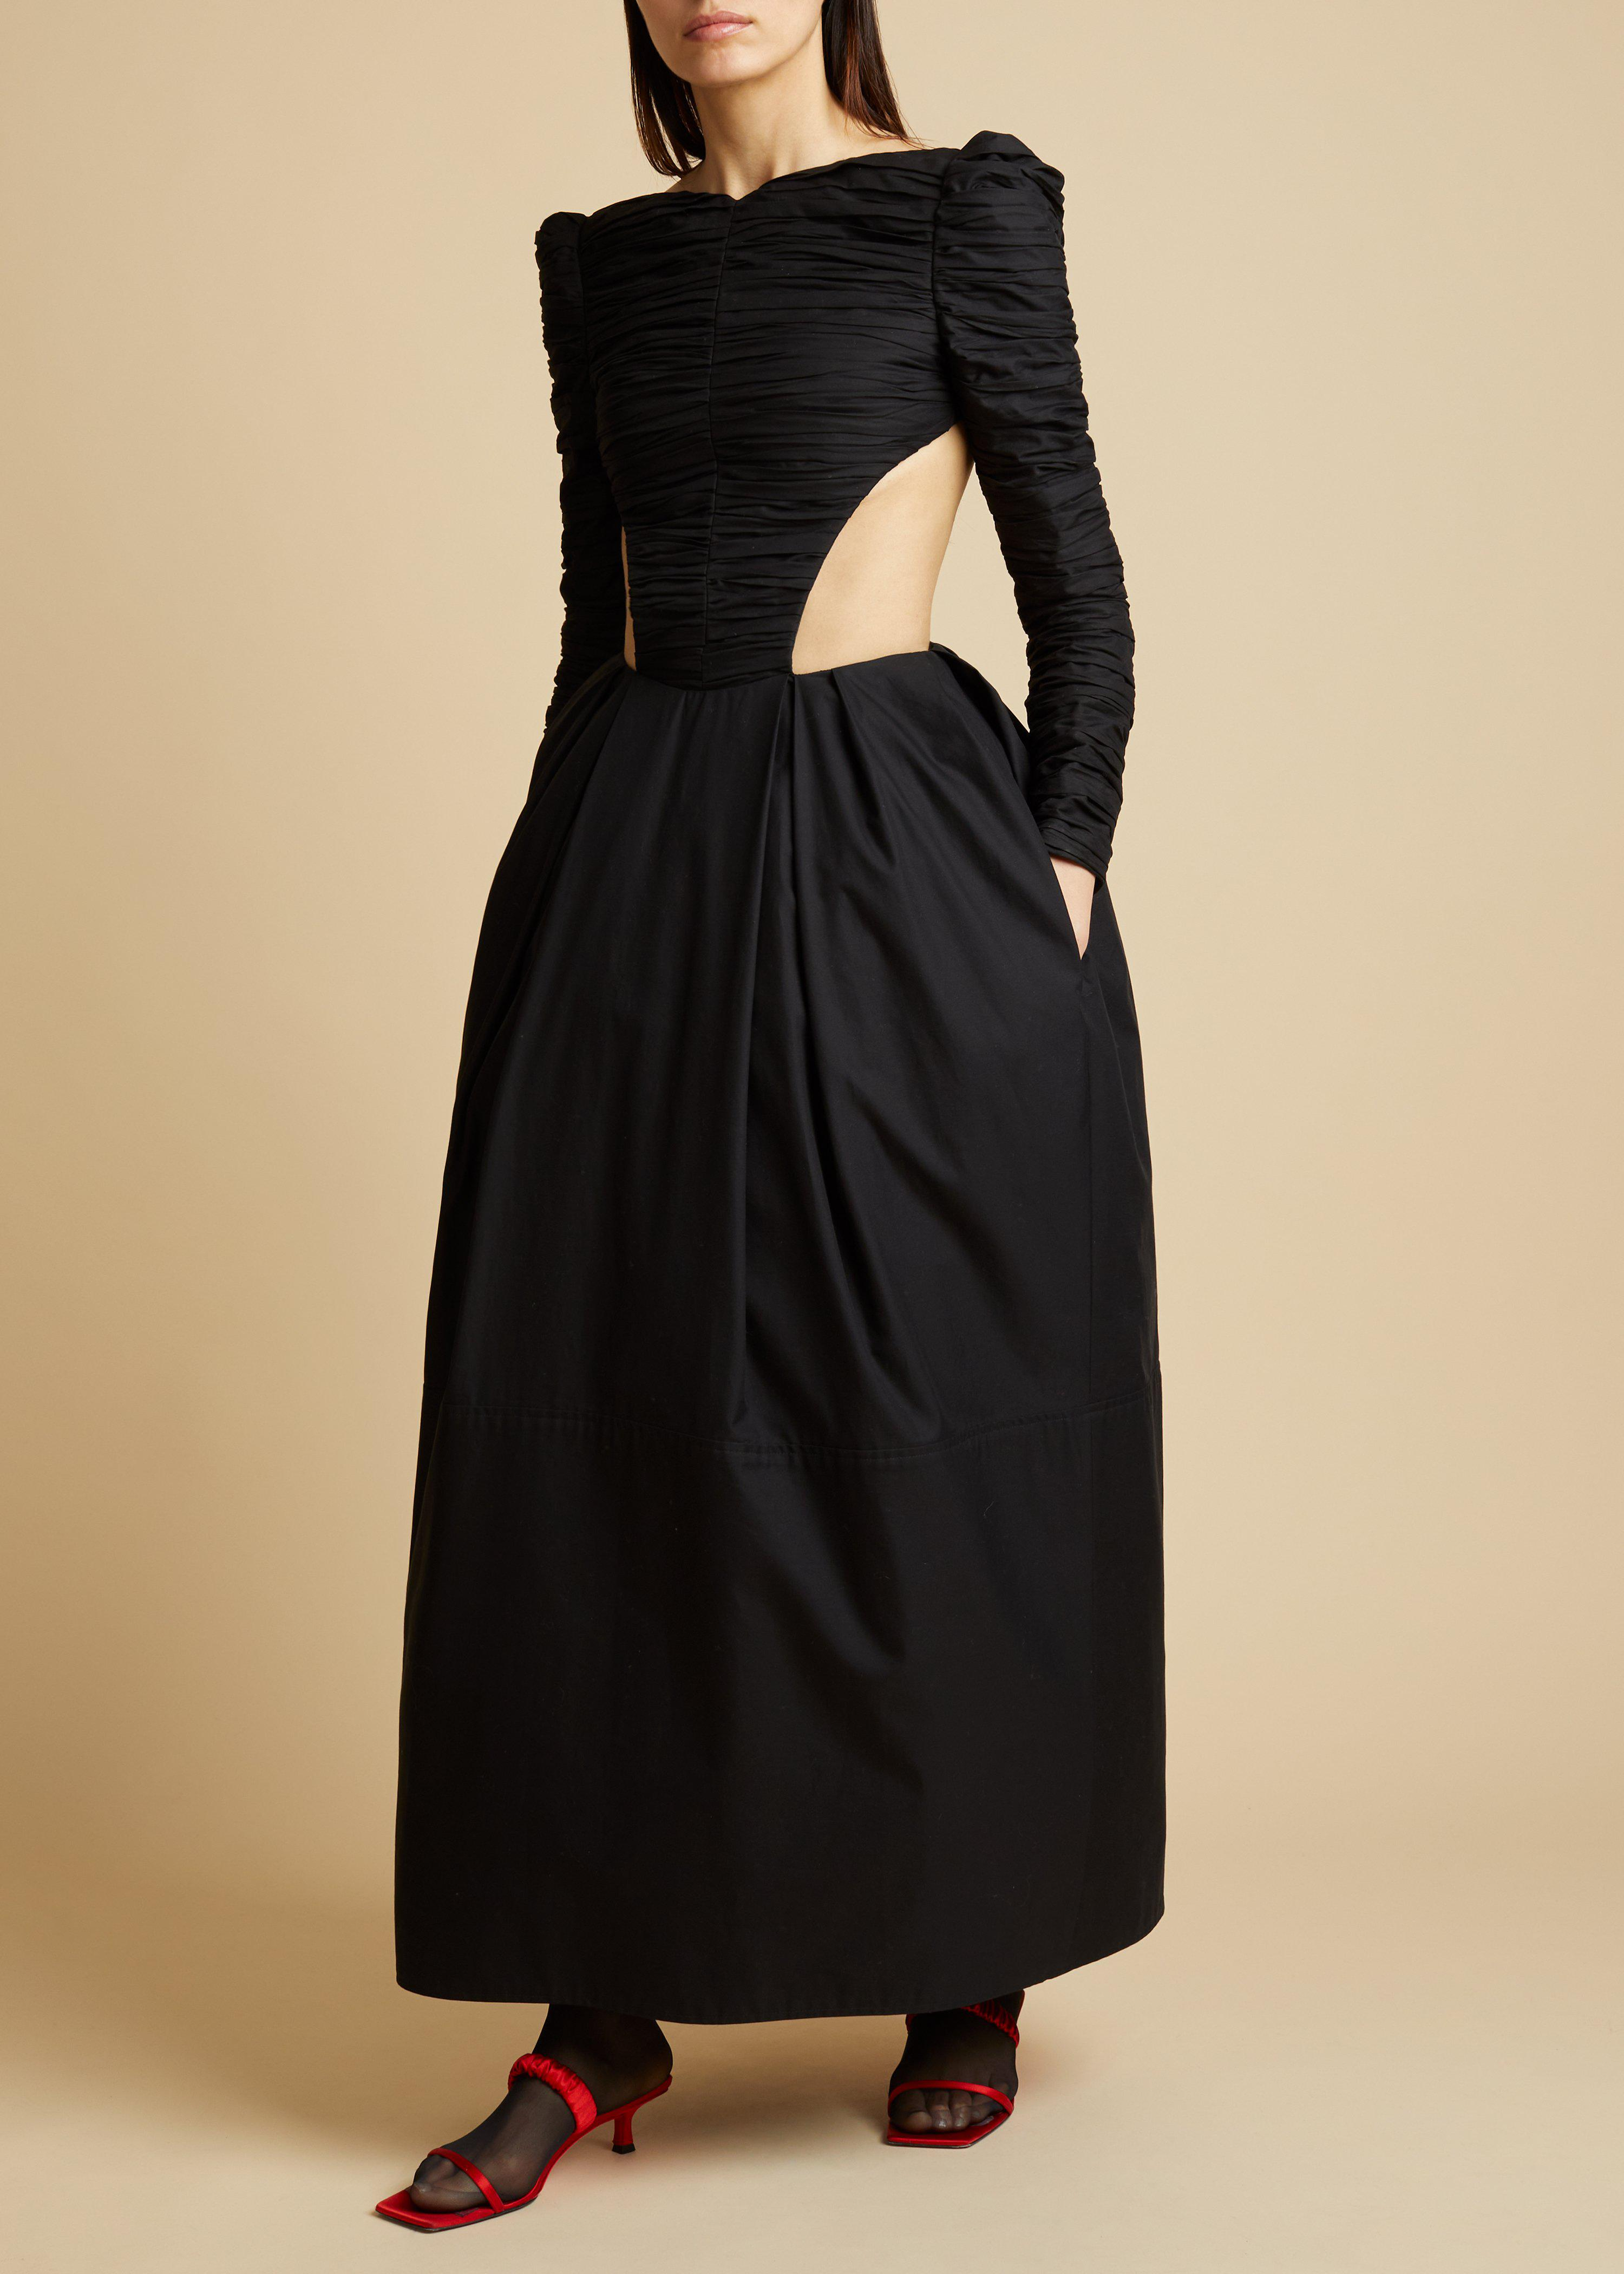 The Rosaline Dress with Petticoat in Black